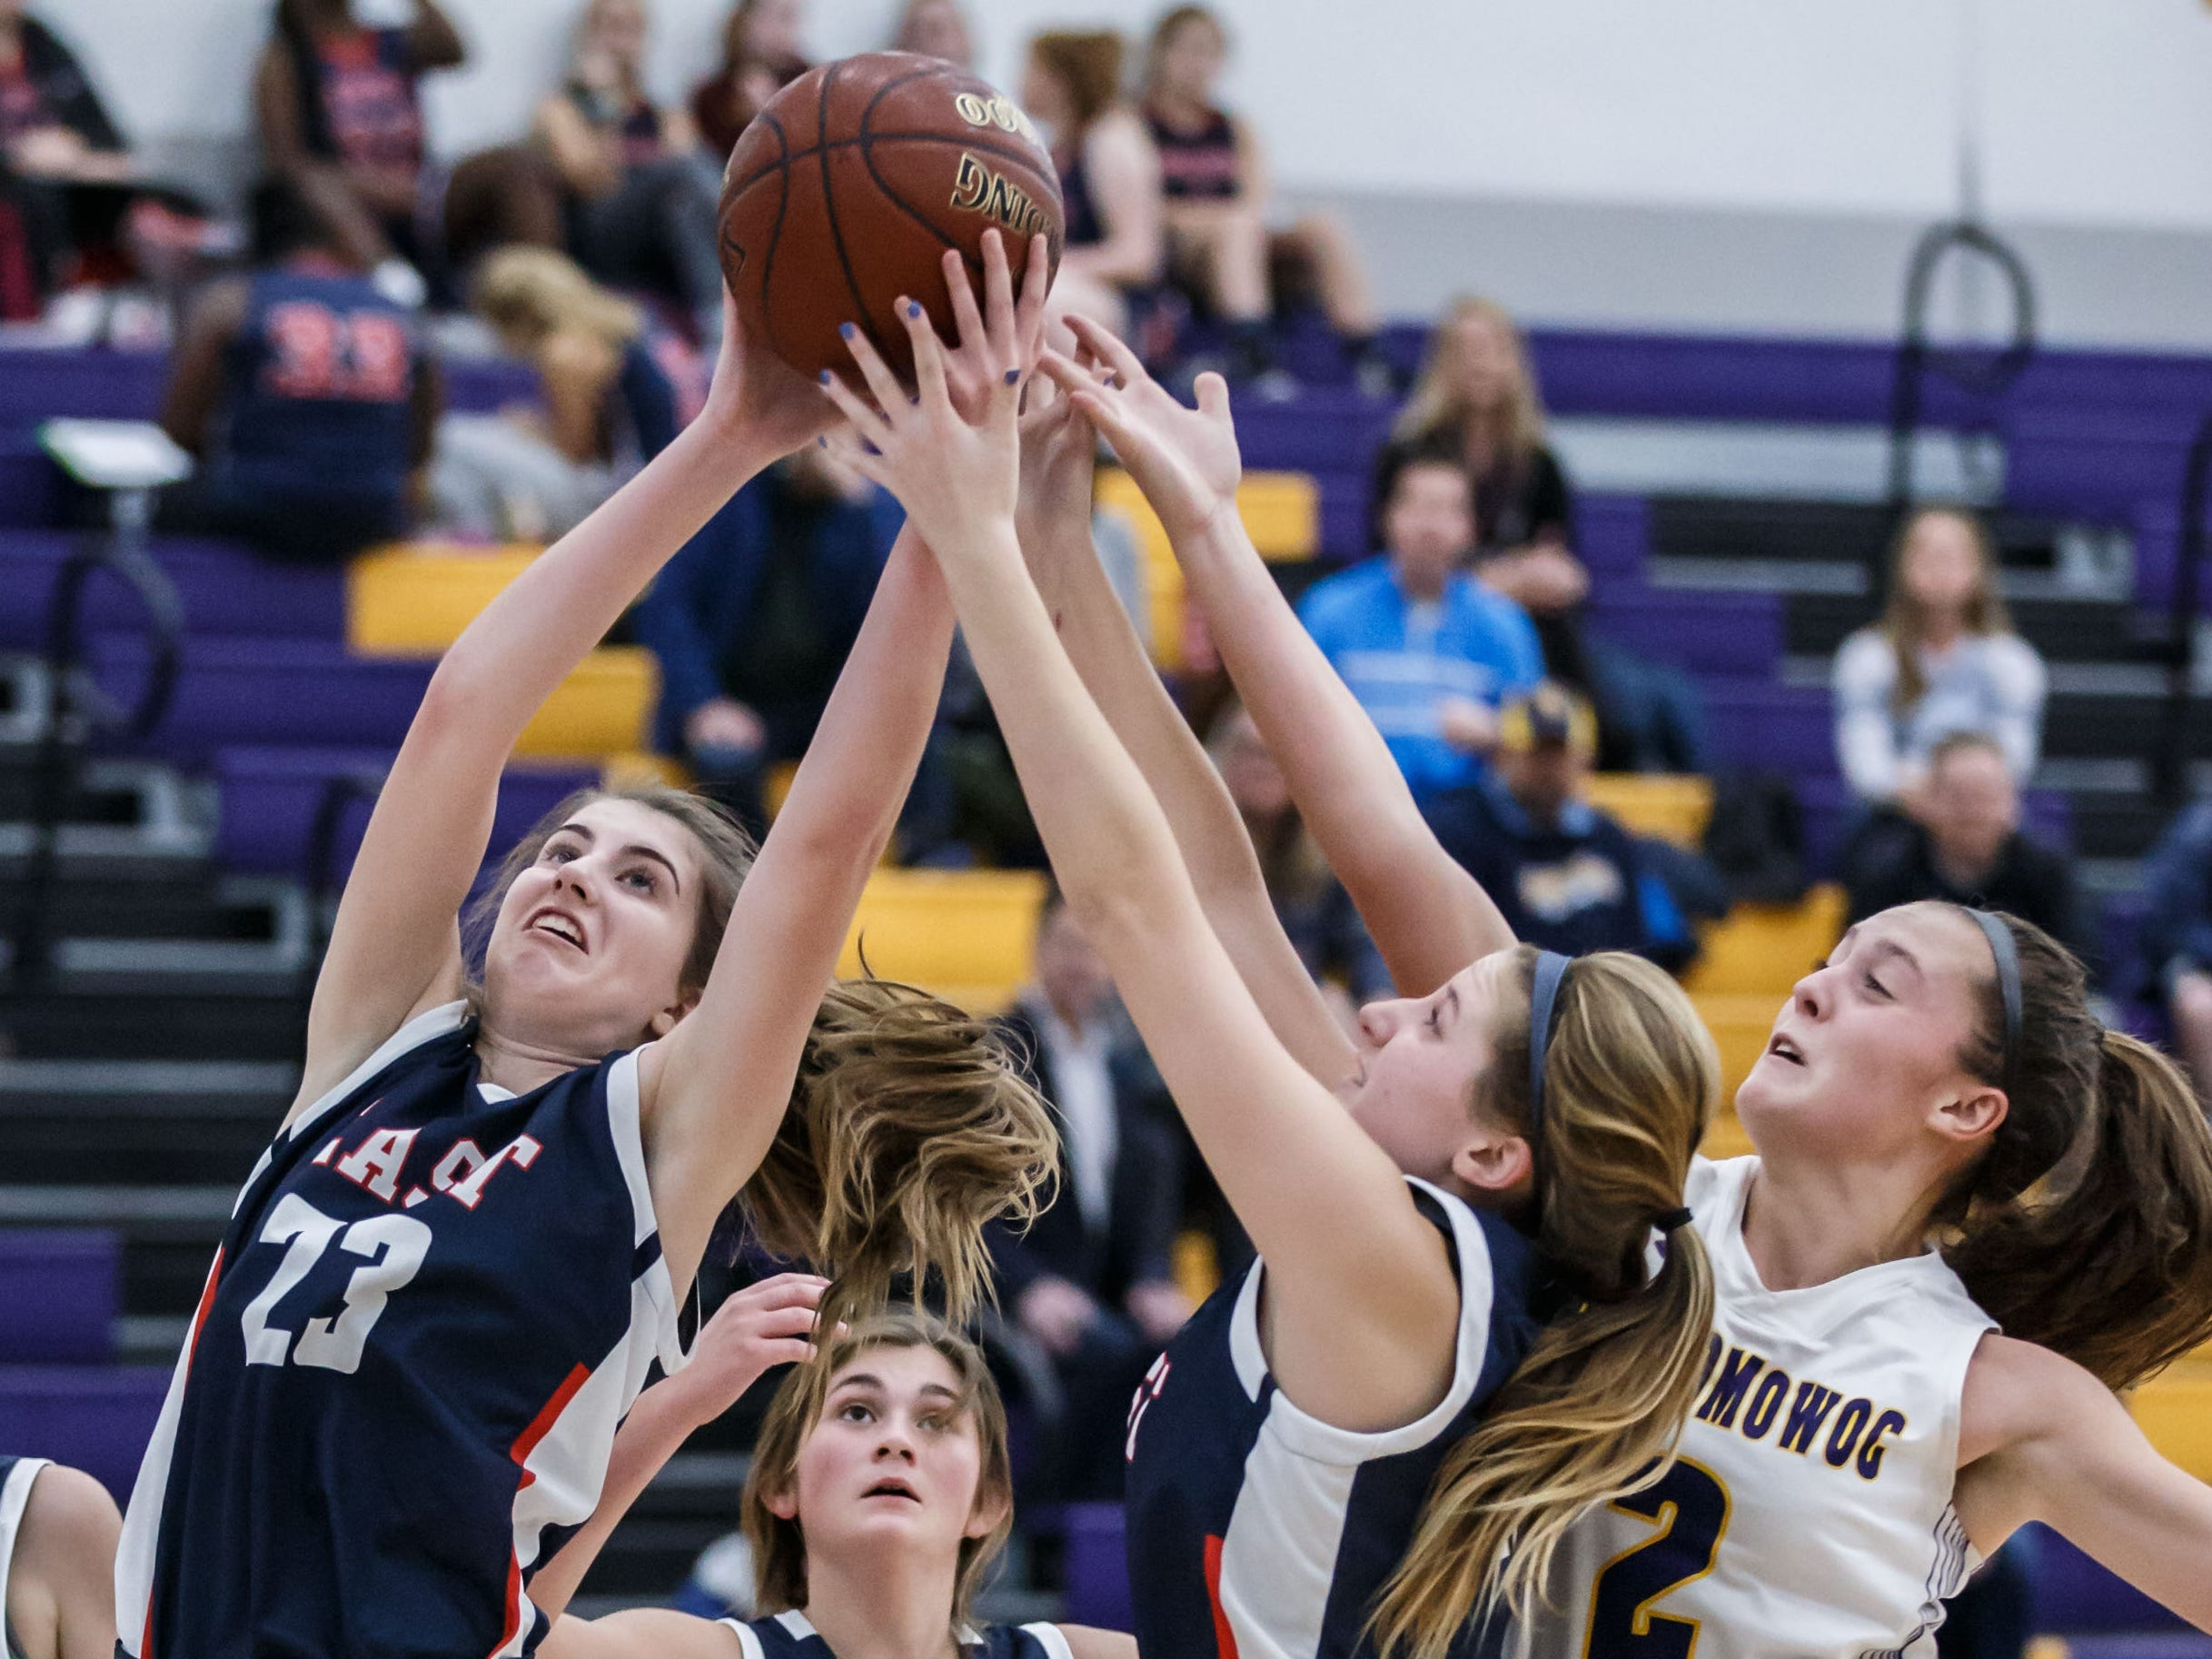 Brookfield East freshman Paige Platz (23) pulls down a rebound during the game at Oconomowoc on Thursday, Nov. 15, 2018.